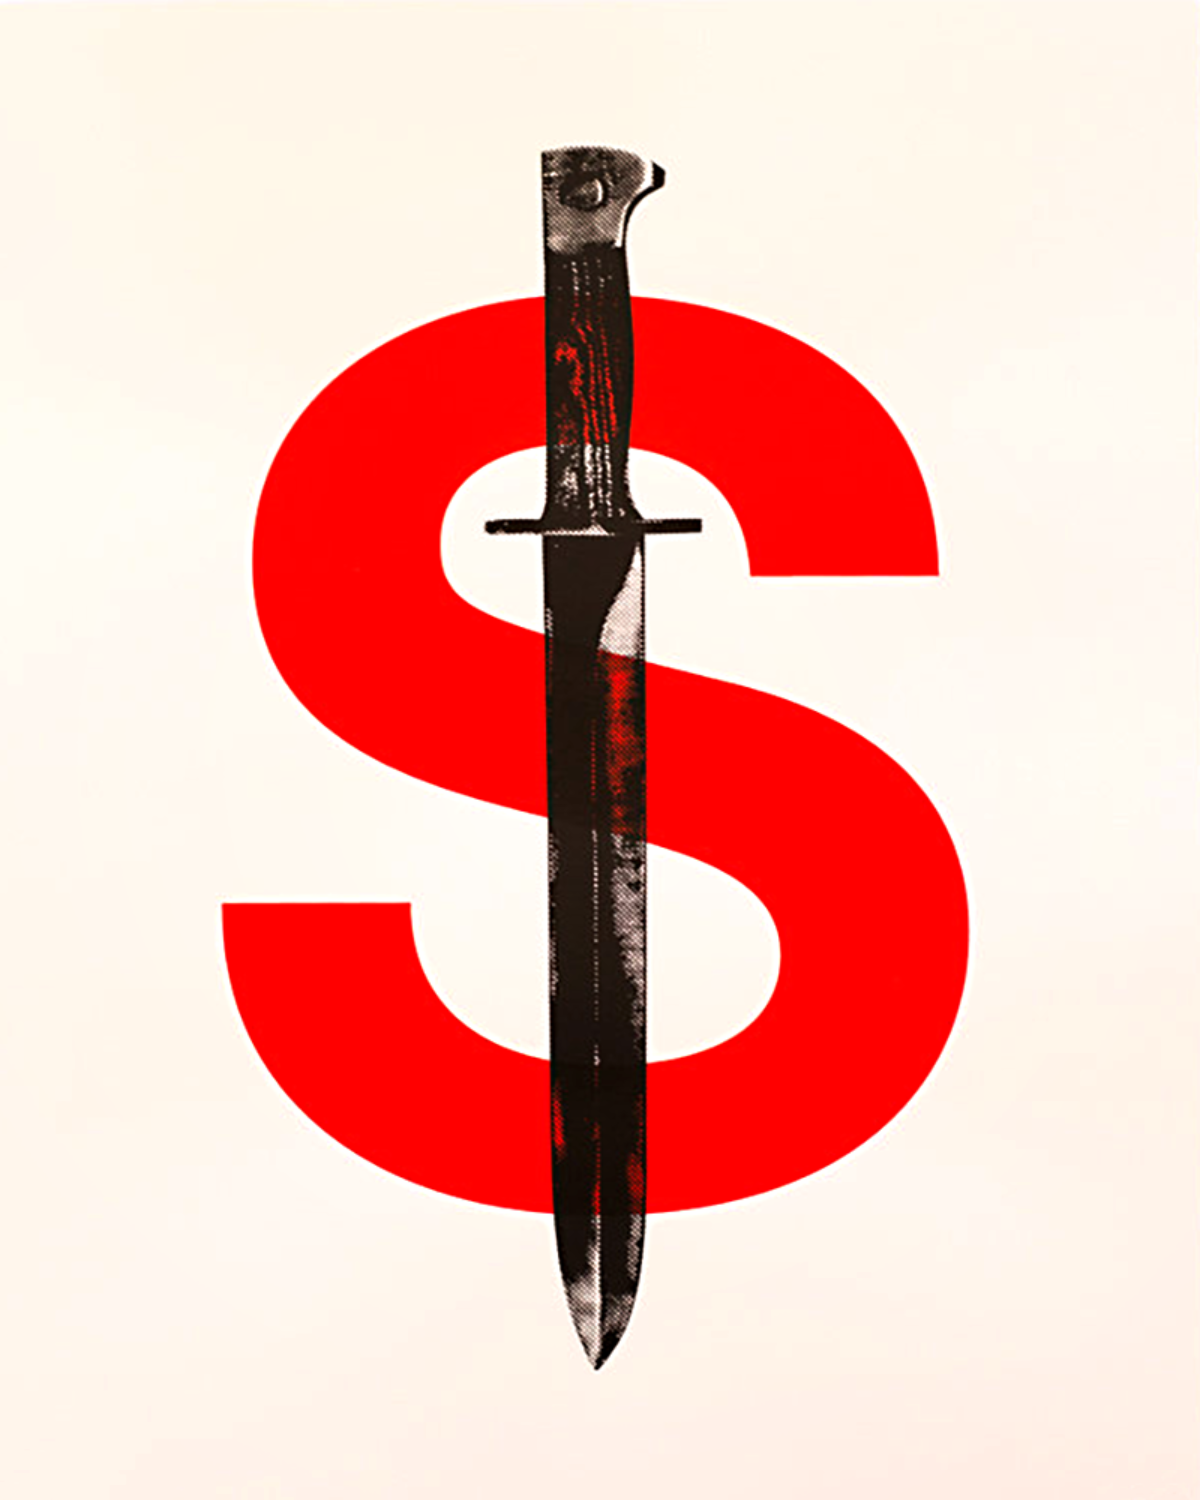 Red 'S' with a black and white dagger placed down the middle forming a dollar sign.